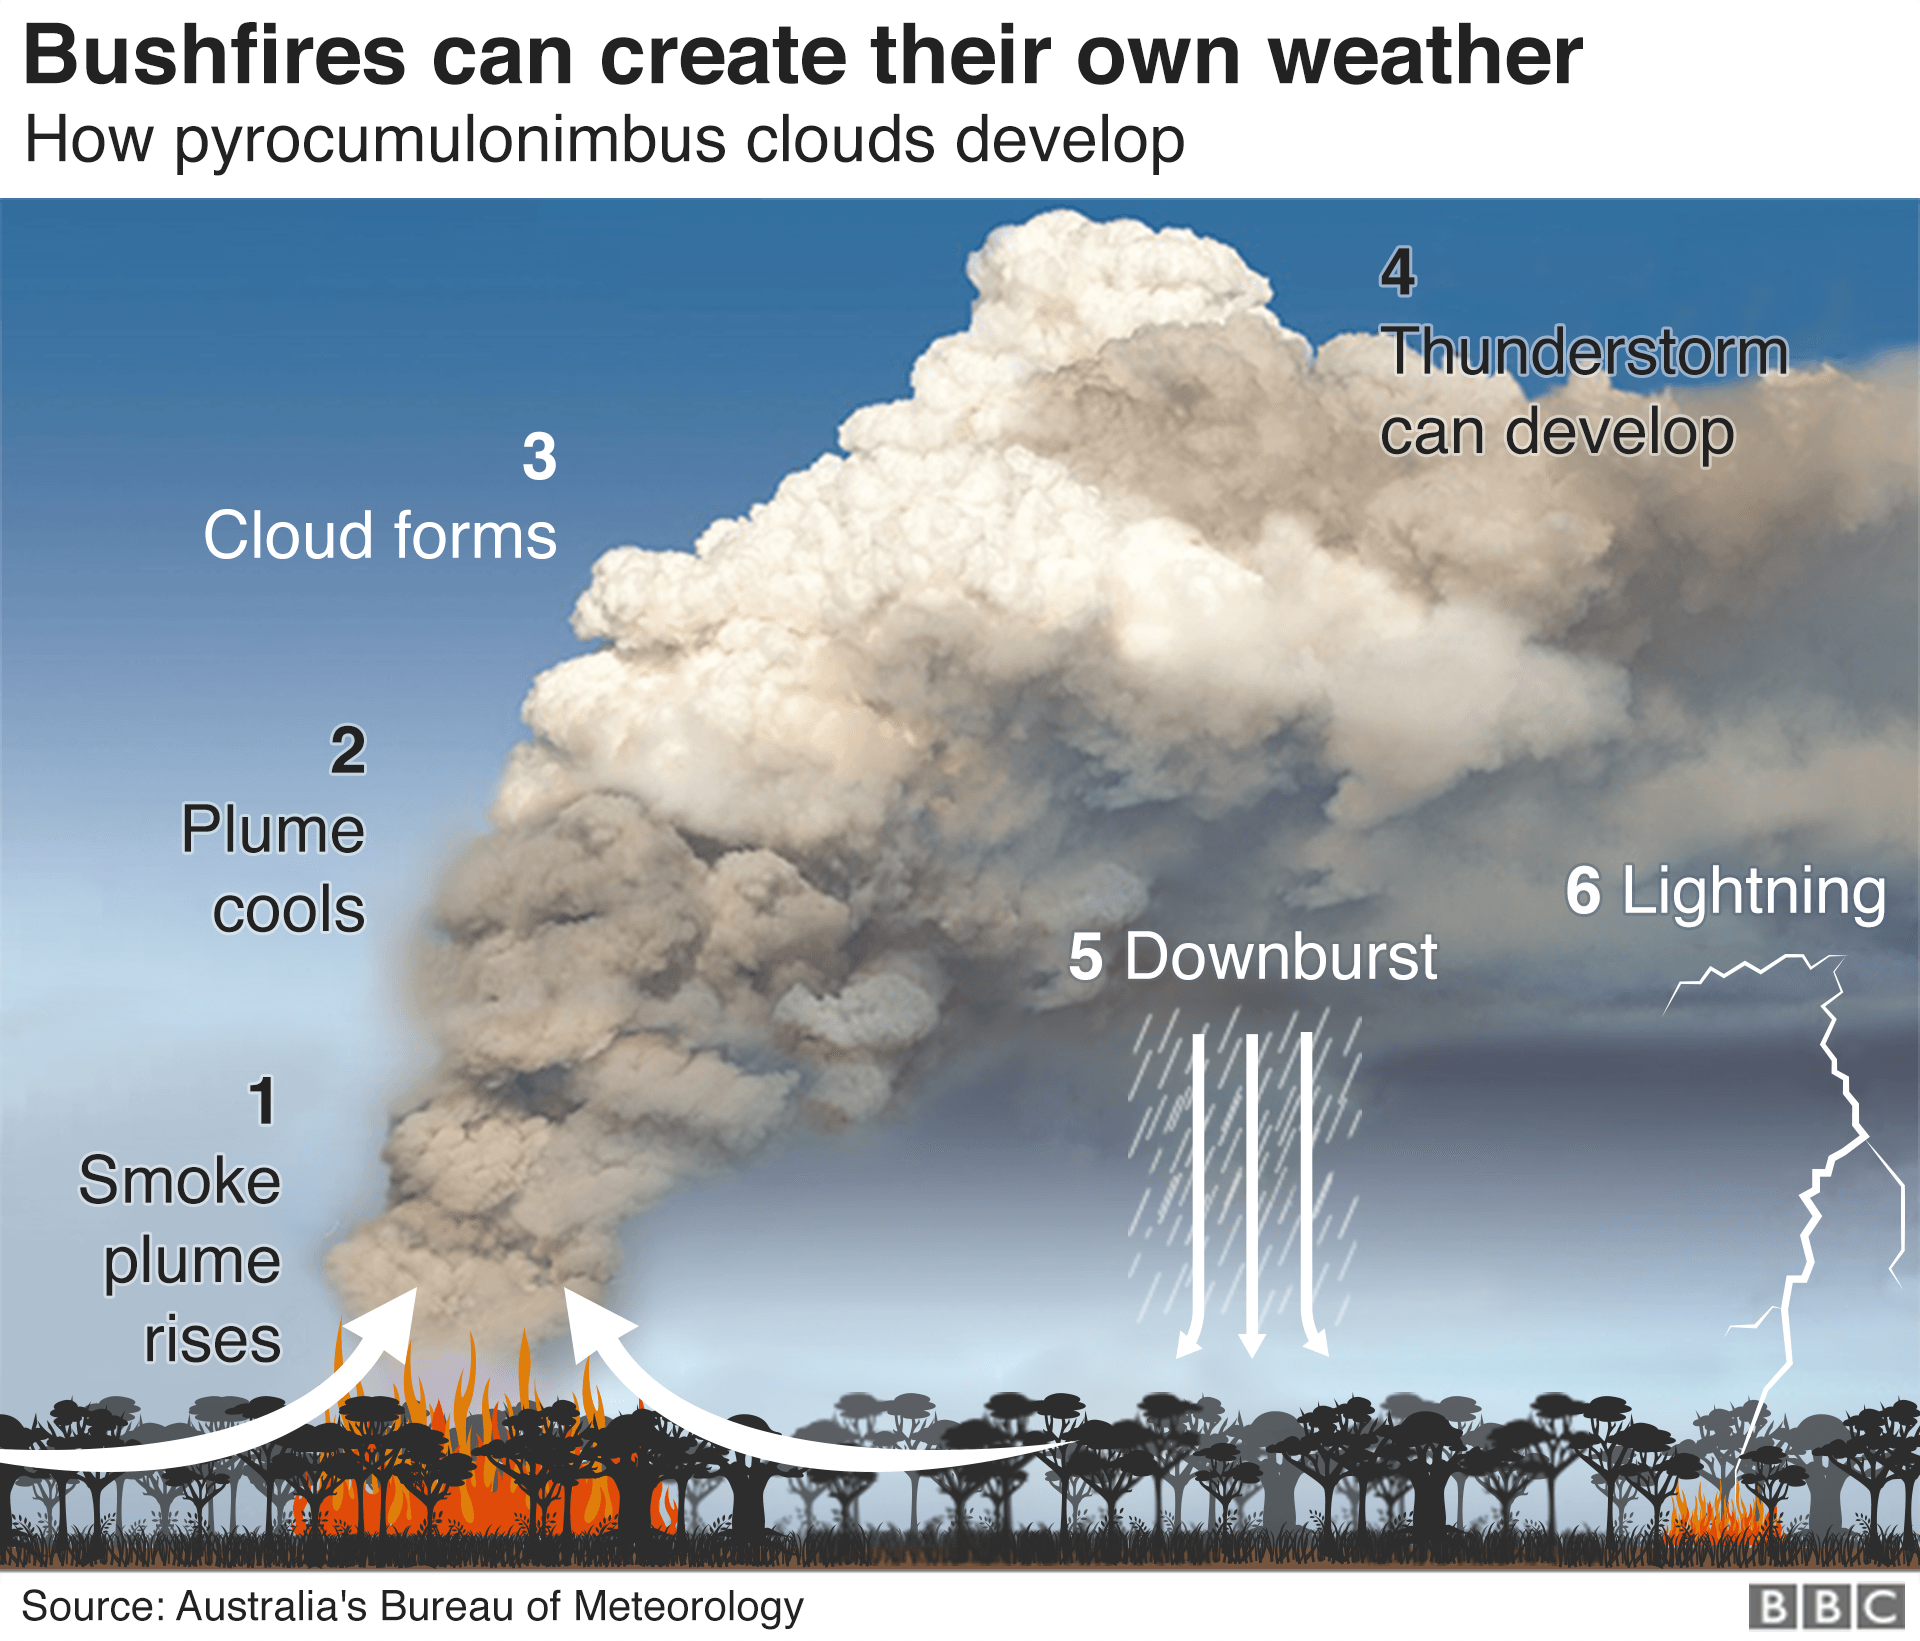 How bushfires can create own weather